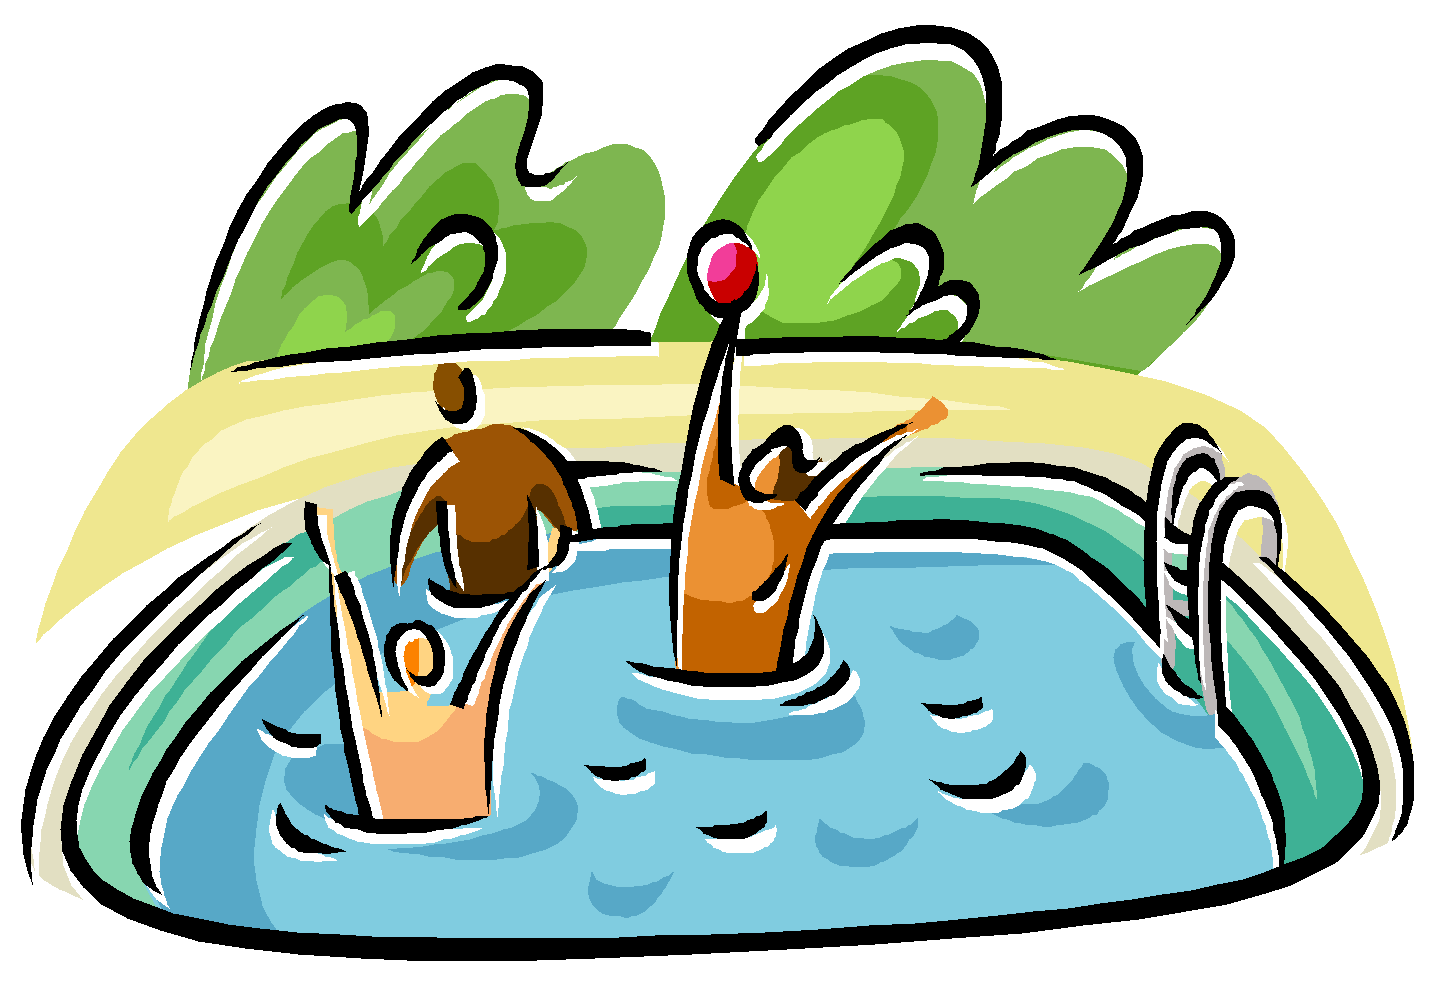 Swimming In A Pool Clipart Clipart Best-Swimming In A Pool Clipart Clipart Best-5